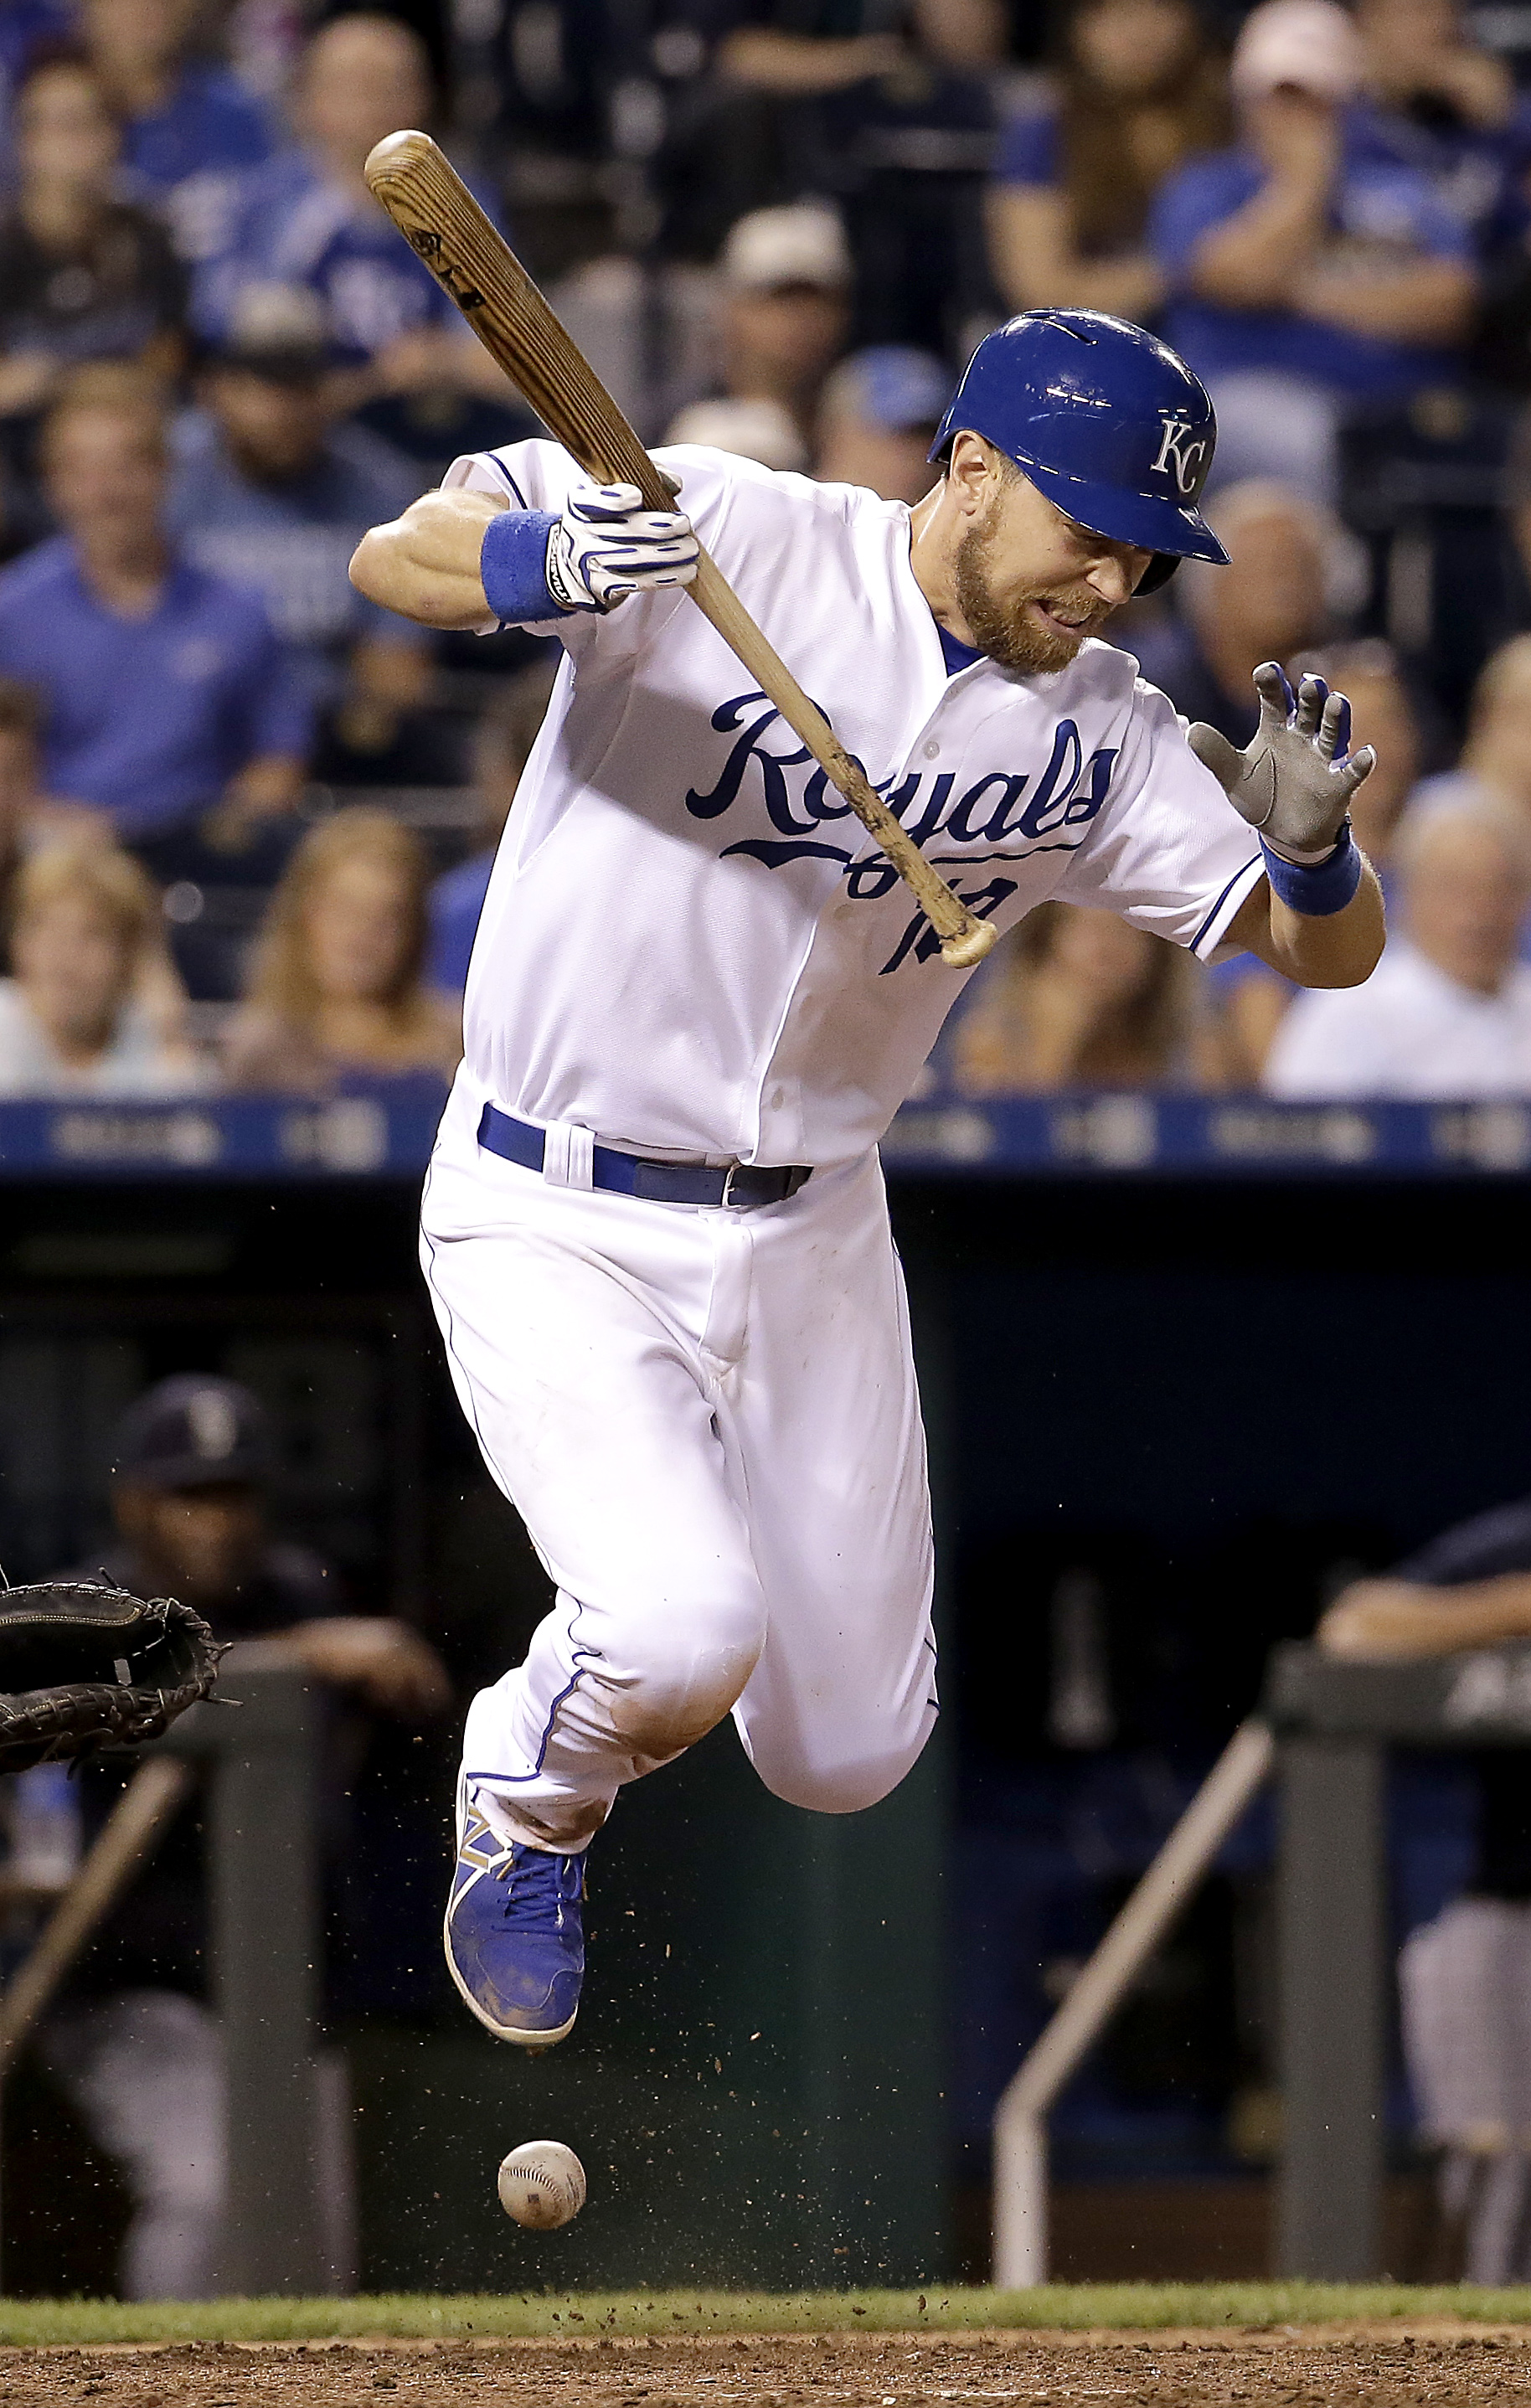 Kansas City Royals' Ben Zobrist is hit by a pitch thrown by Seattle Mariners reliever David Rollins during the 10th inning of a baseball game Wednesday, Sept. 23, 2015, in Kansas City, Mo. (AP Photo/Charlie Riedel)